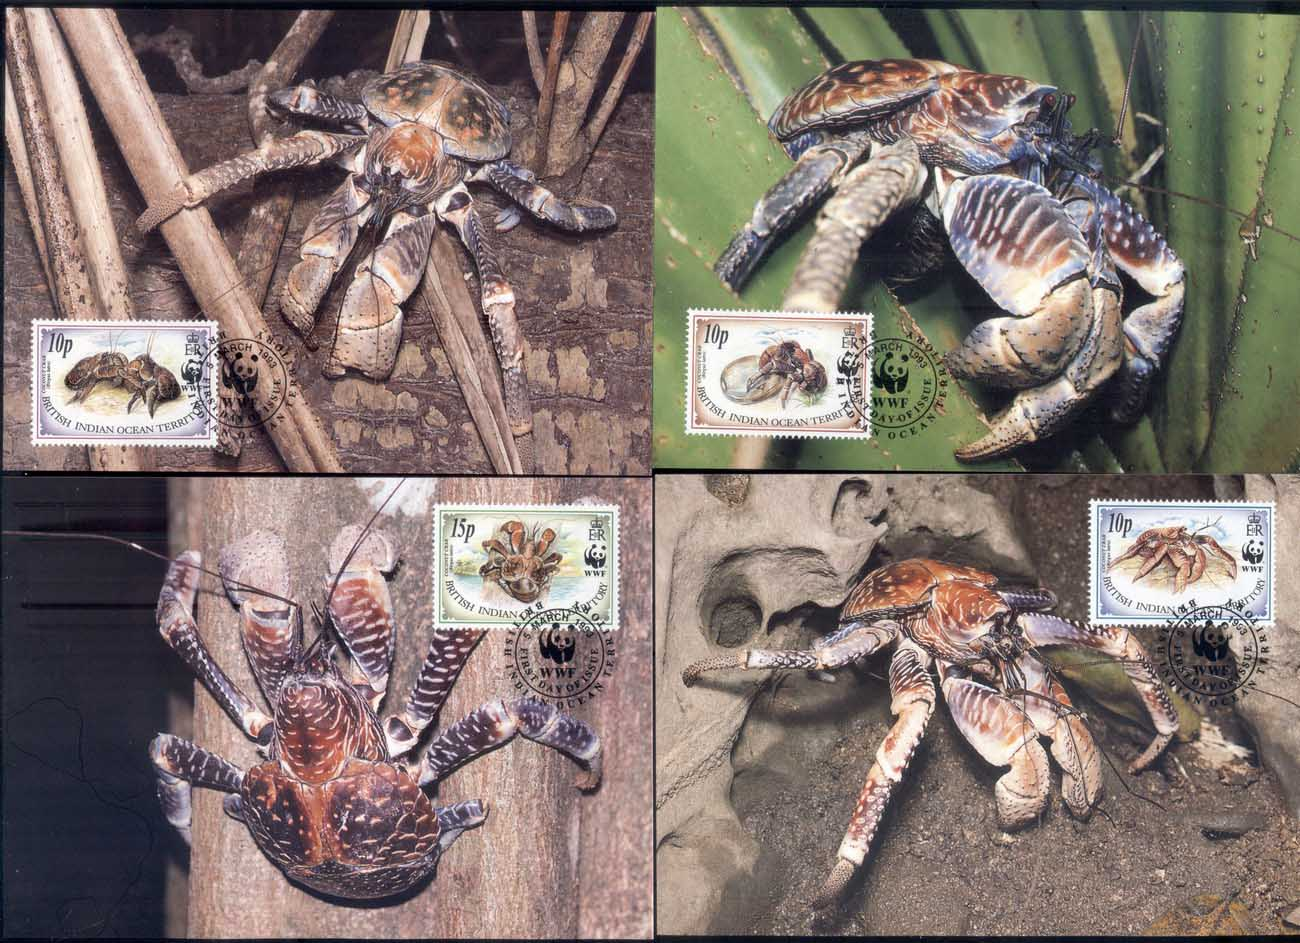 BIOT 1993 WWF Coconut Crabs Maxicards